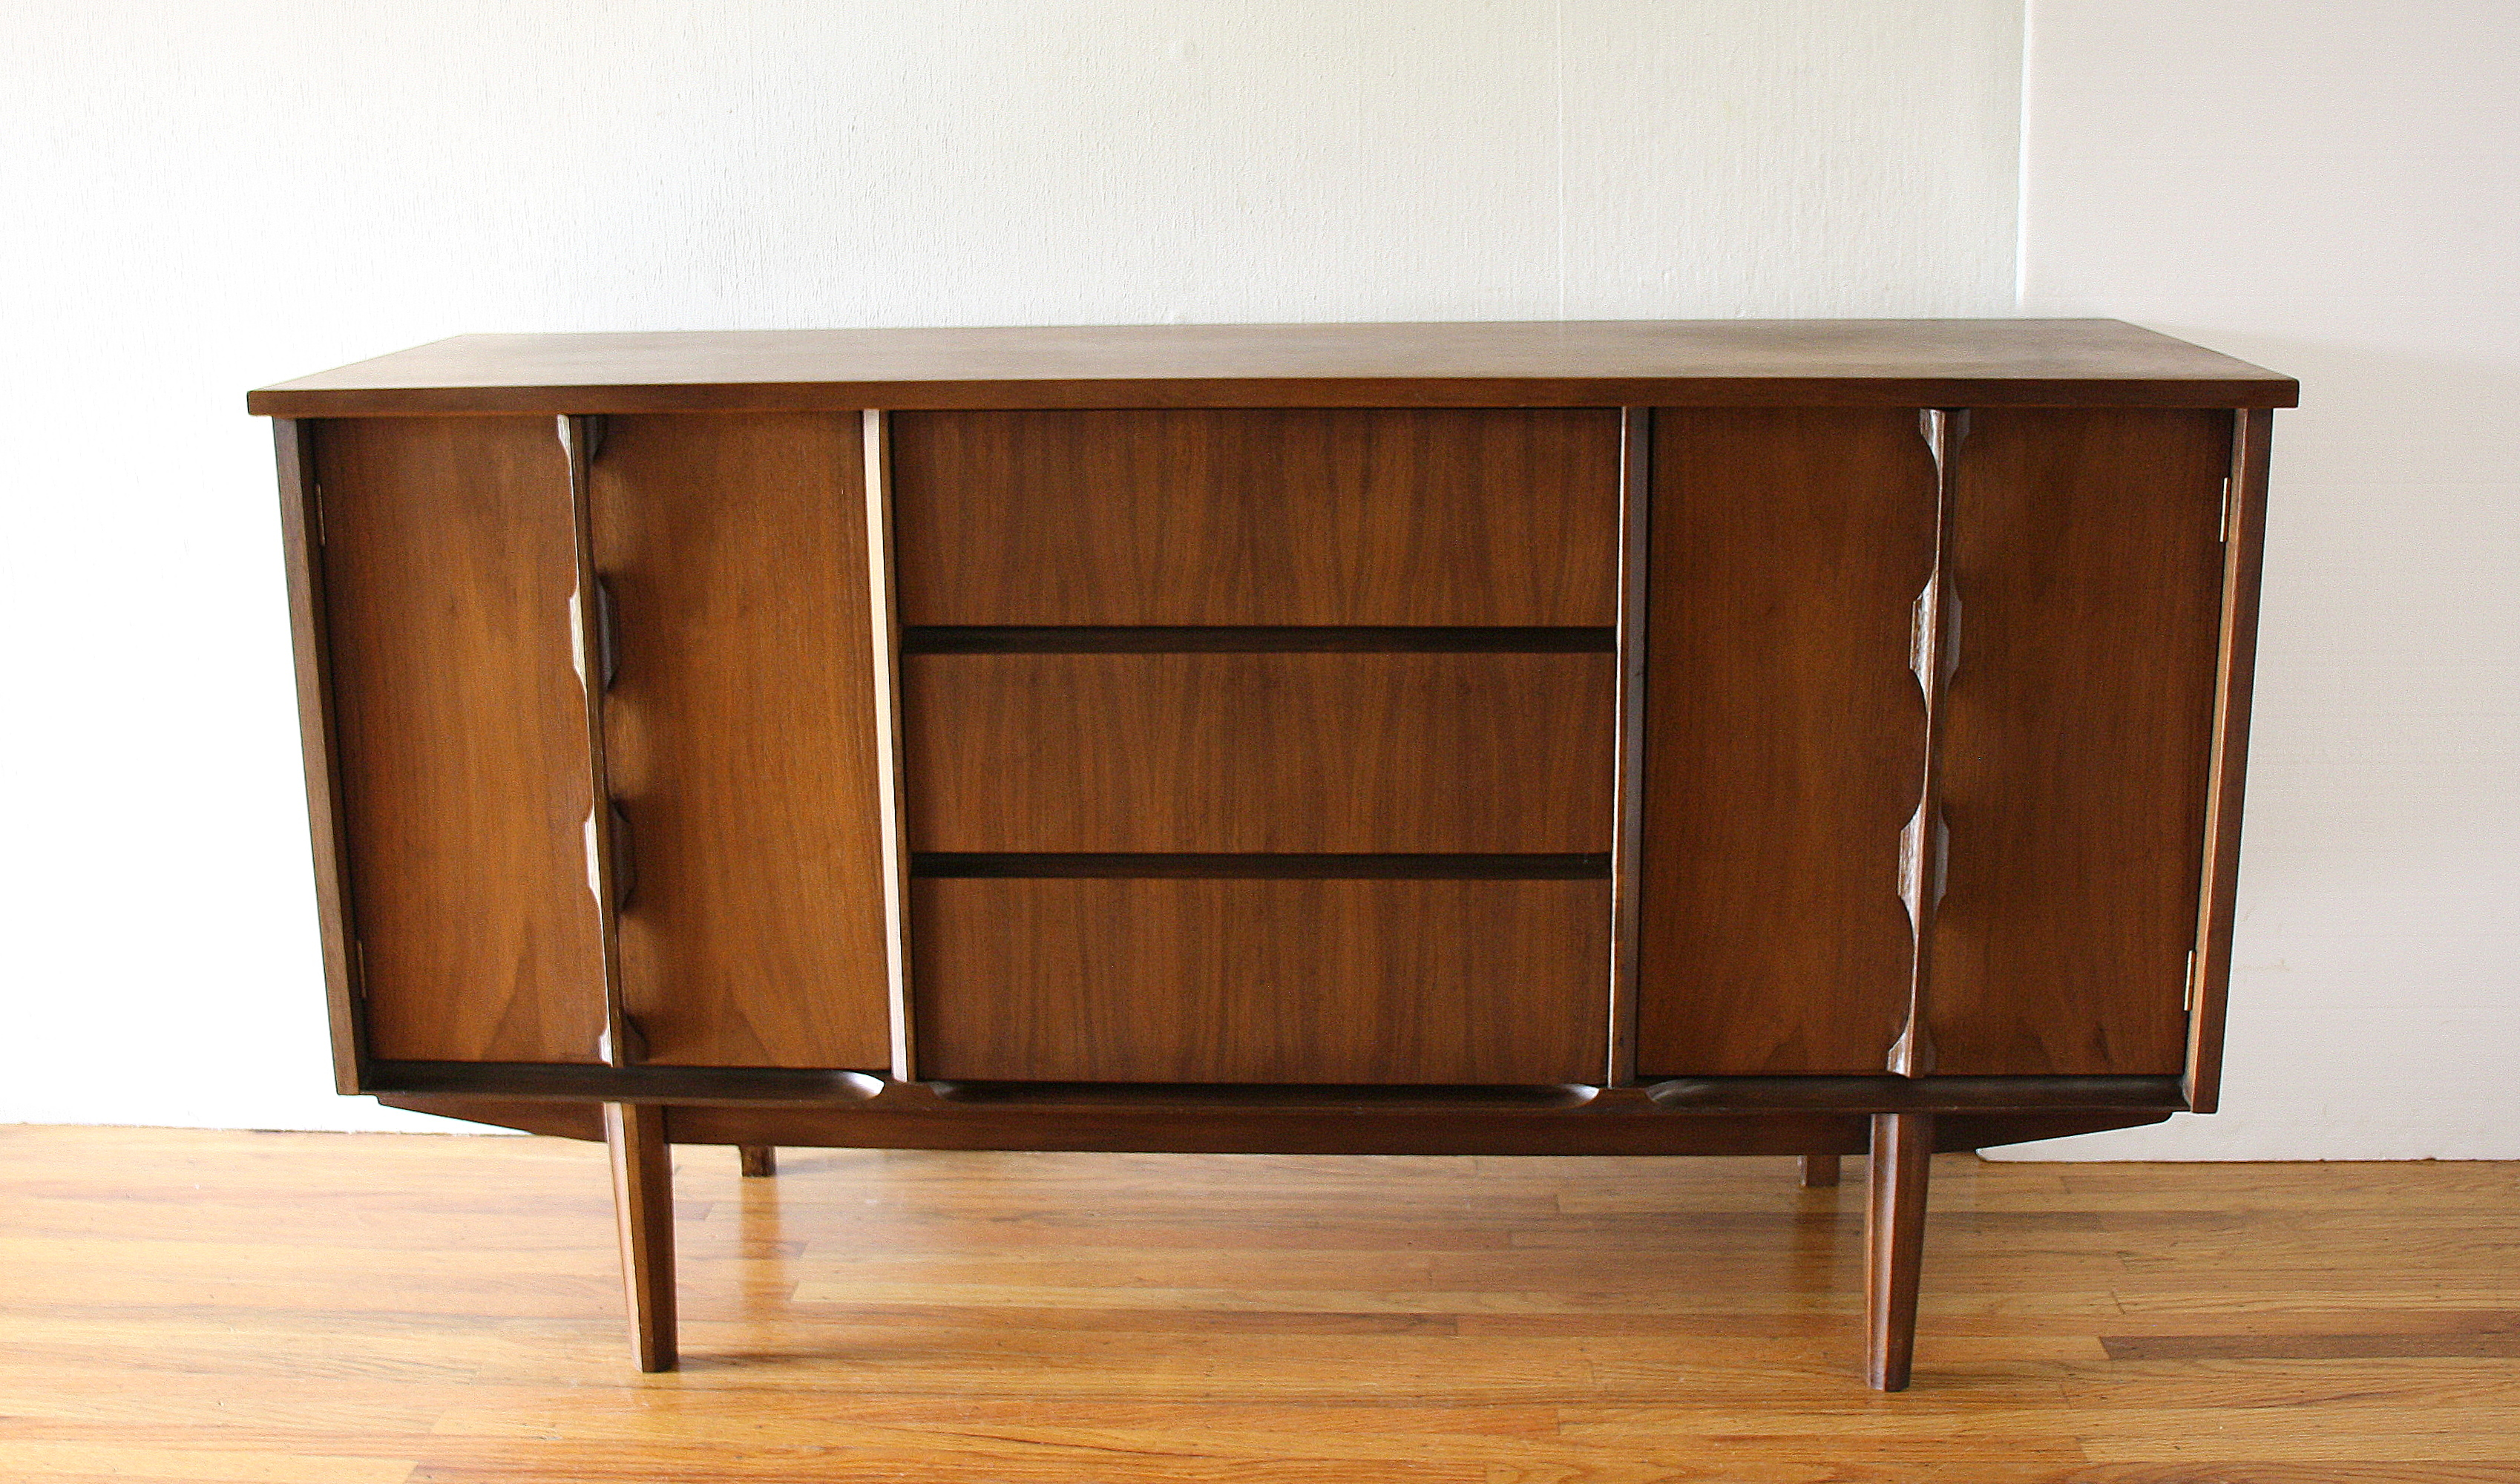 Mcm credenza with sculpted pulls 1.JPG